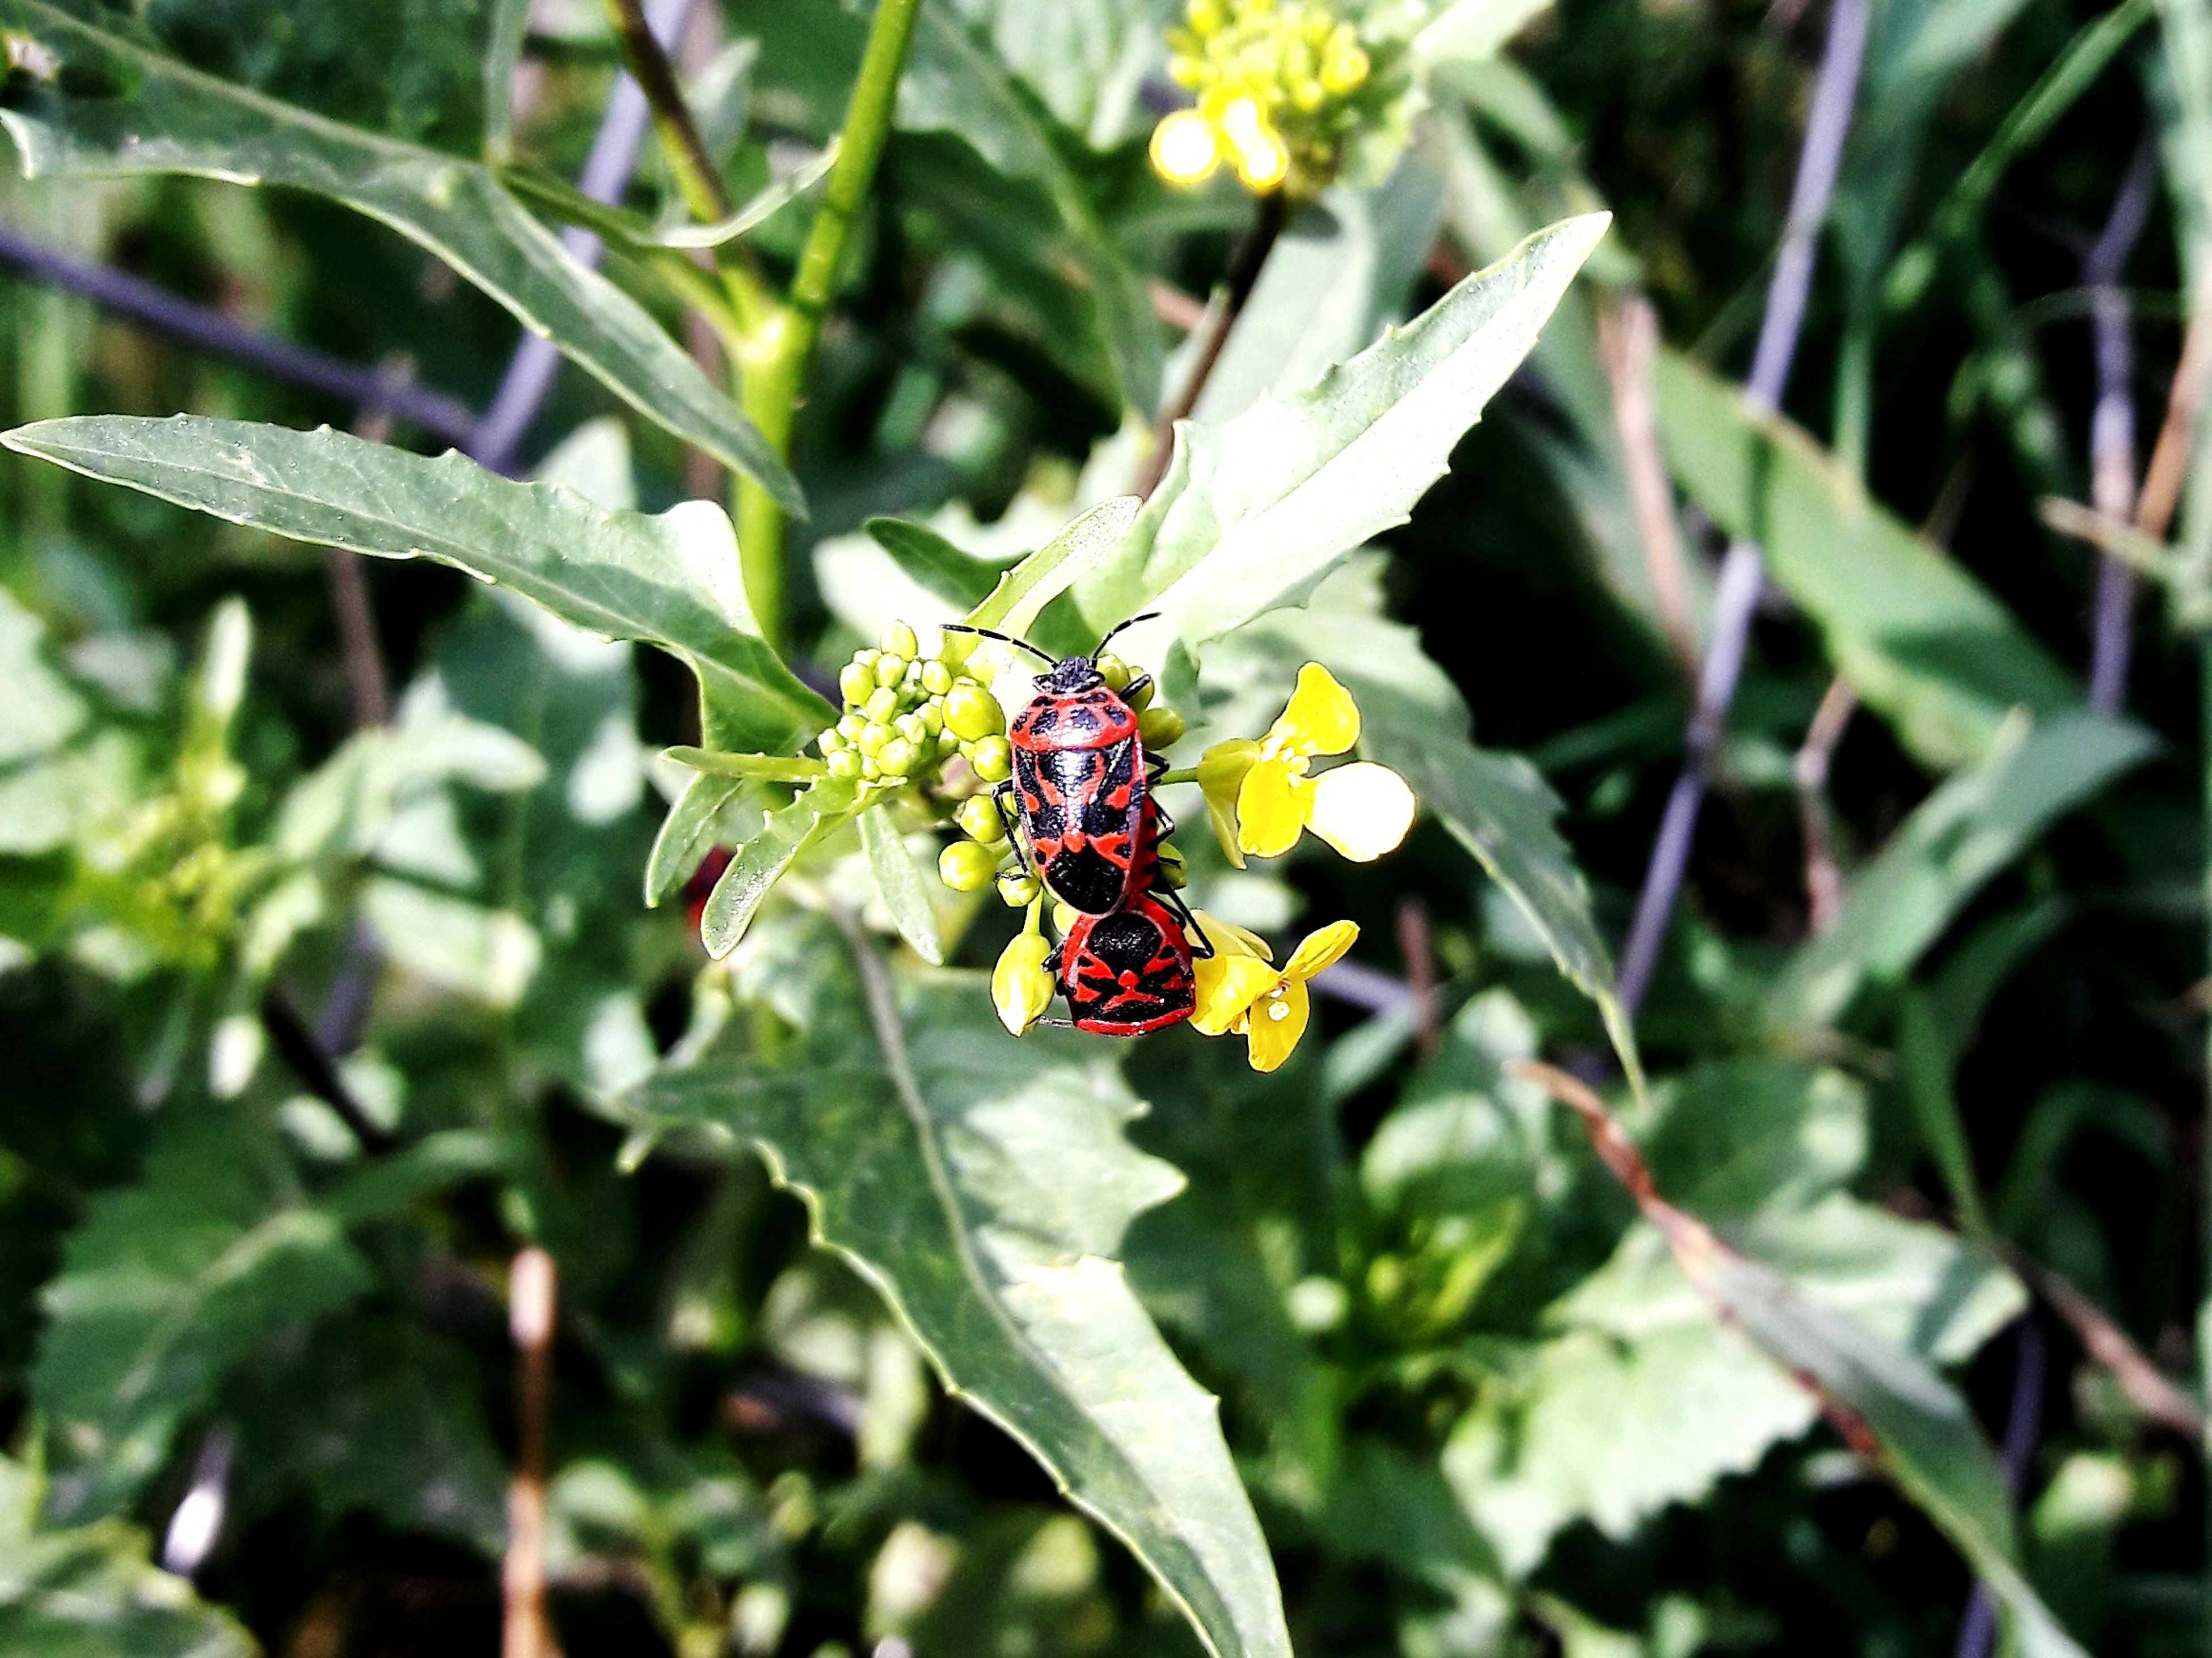 insect, animals in the wild, animal themes, one animal, leaf, plant, green color, nature, outdoors, day, no people, animal wildlife, growth, ladybug, close-up, beauty in nature, grass, fragility